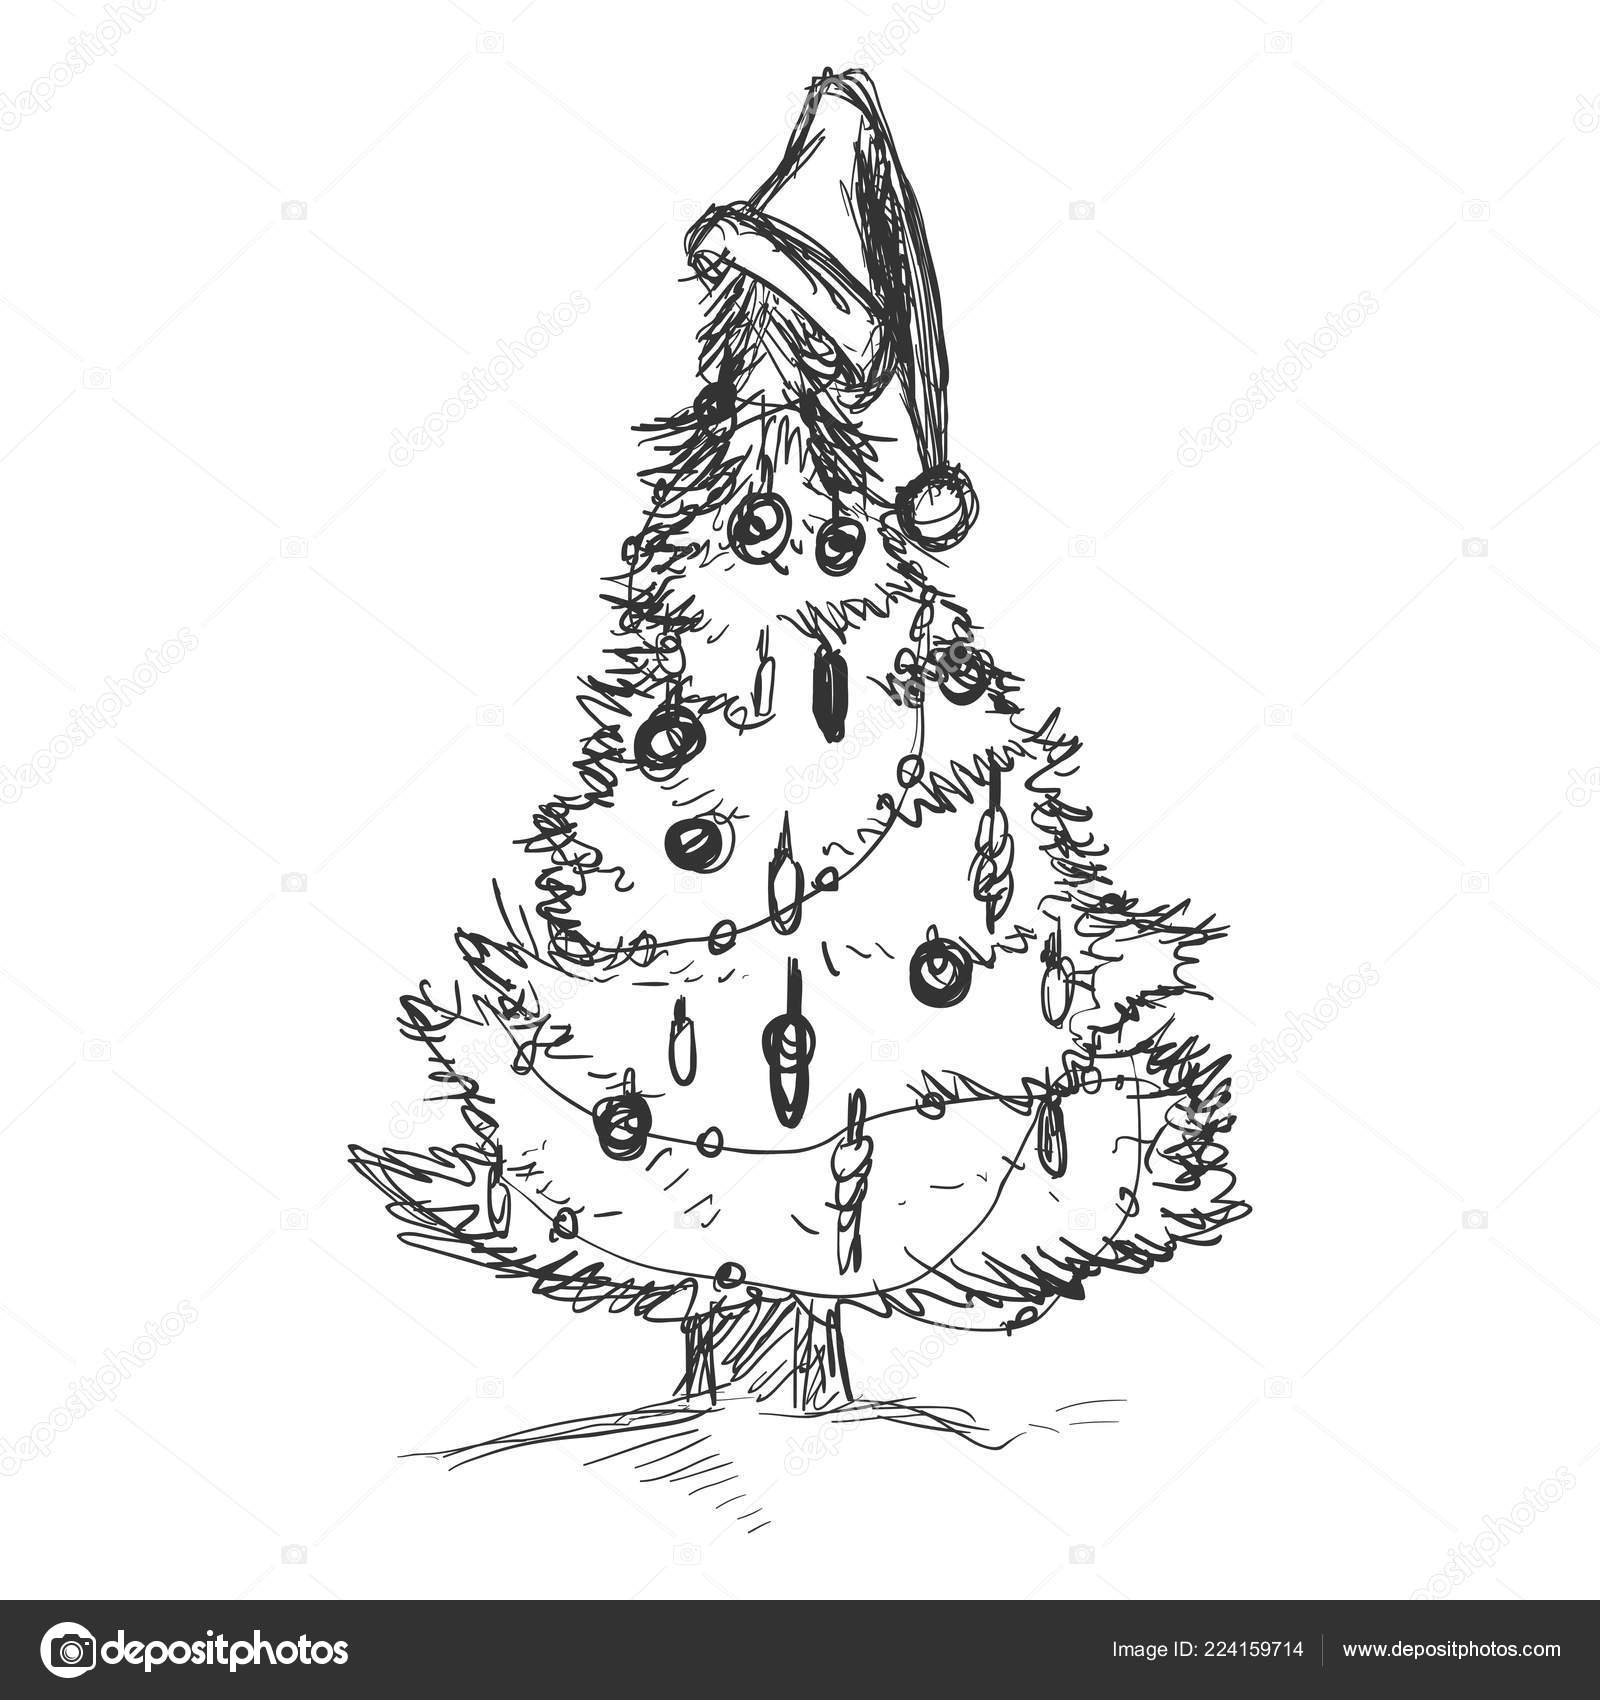 Vector Dirty Sketch Illustration Christmas Tree Decorations Stock